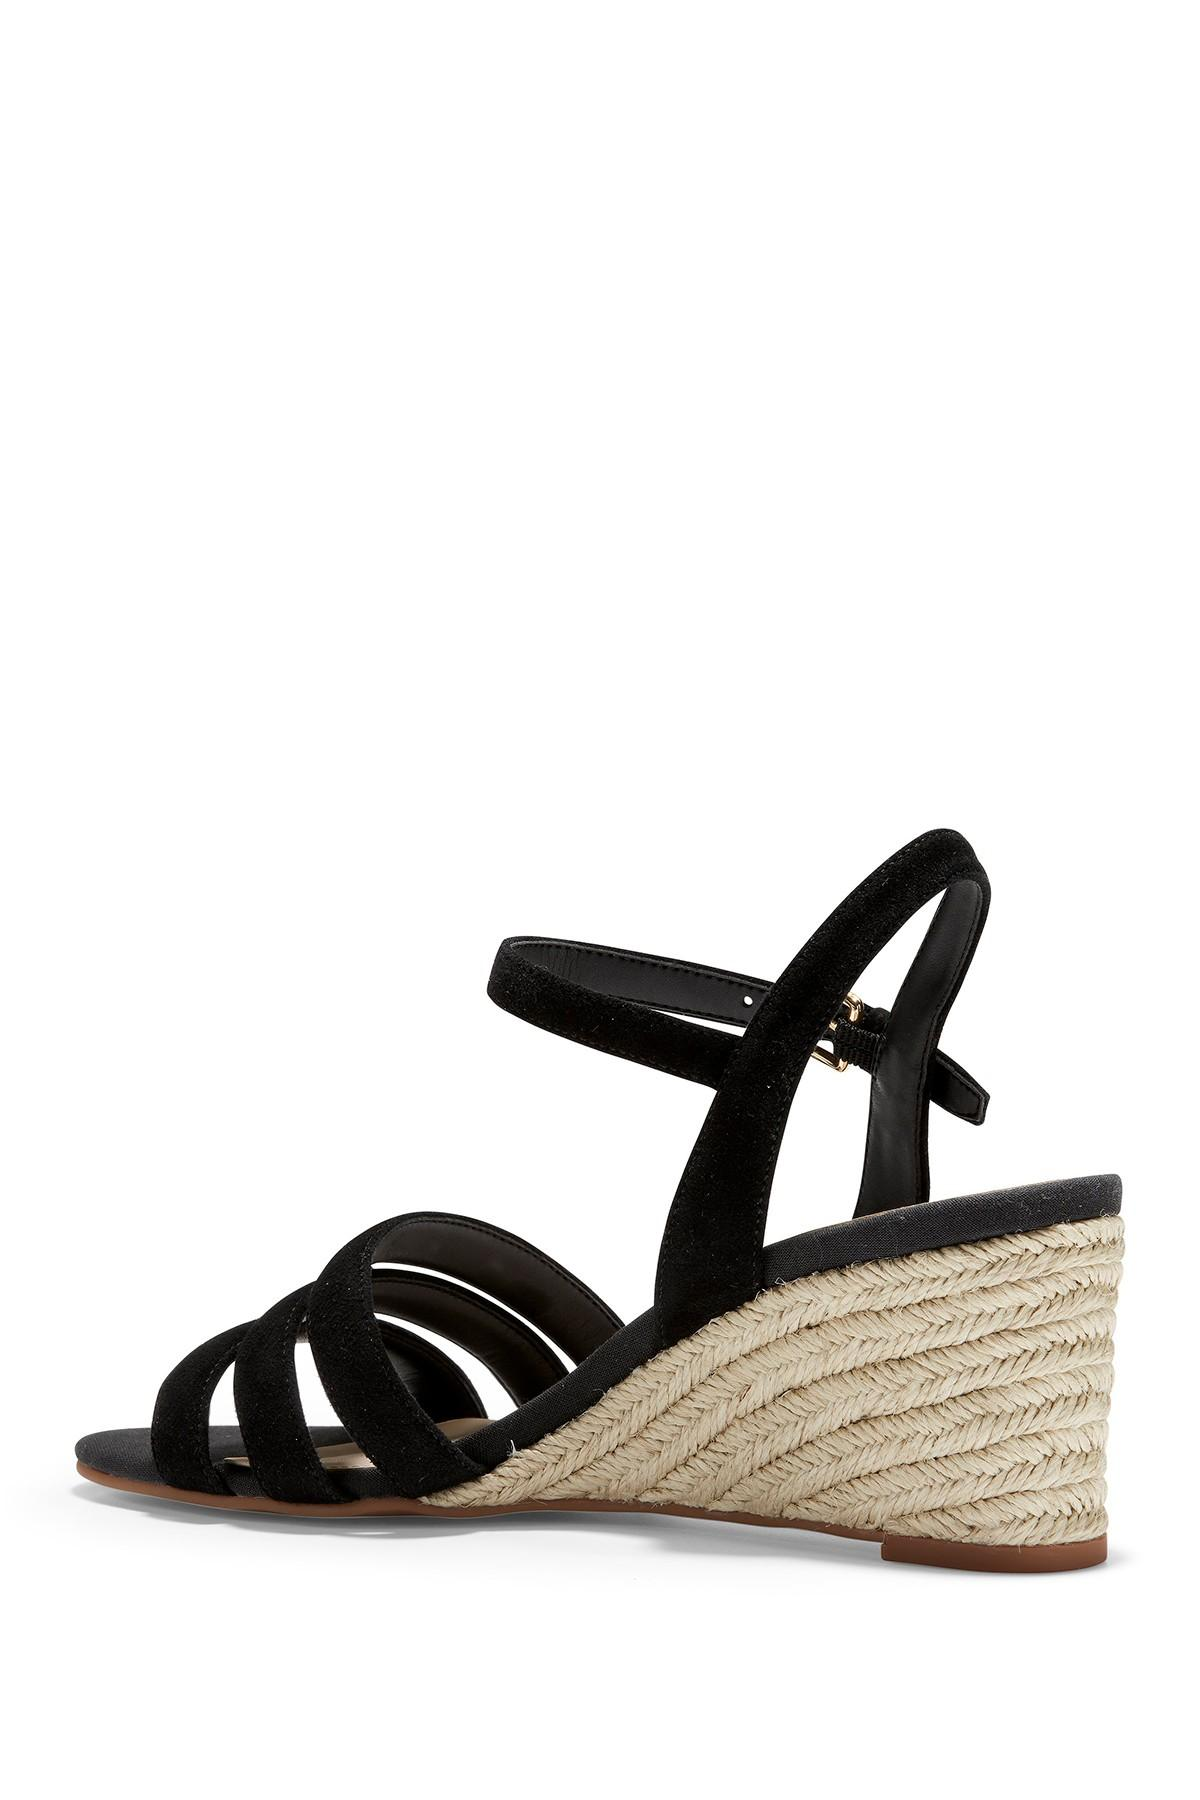 a6629bd480c Cole Haan - Black Jasmine Espadrille Strappy Wedge Sandal - Lyst. View  fullscreen